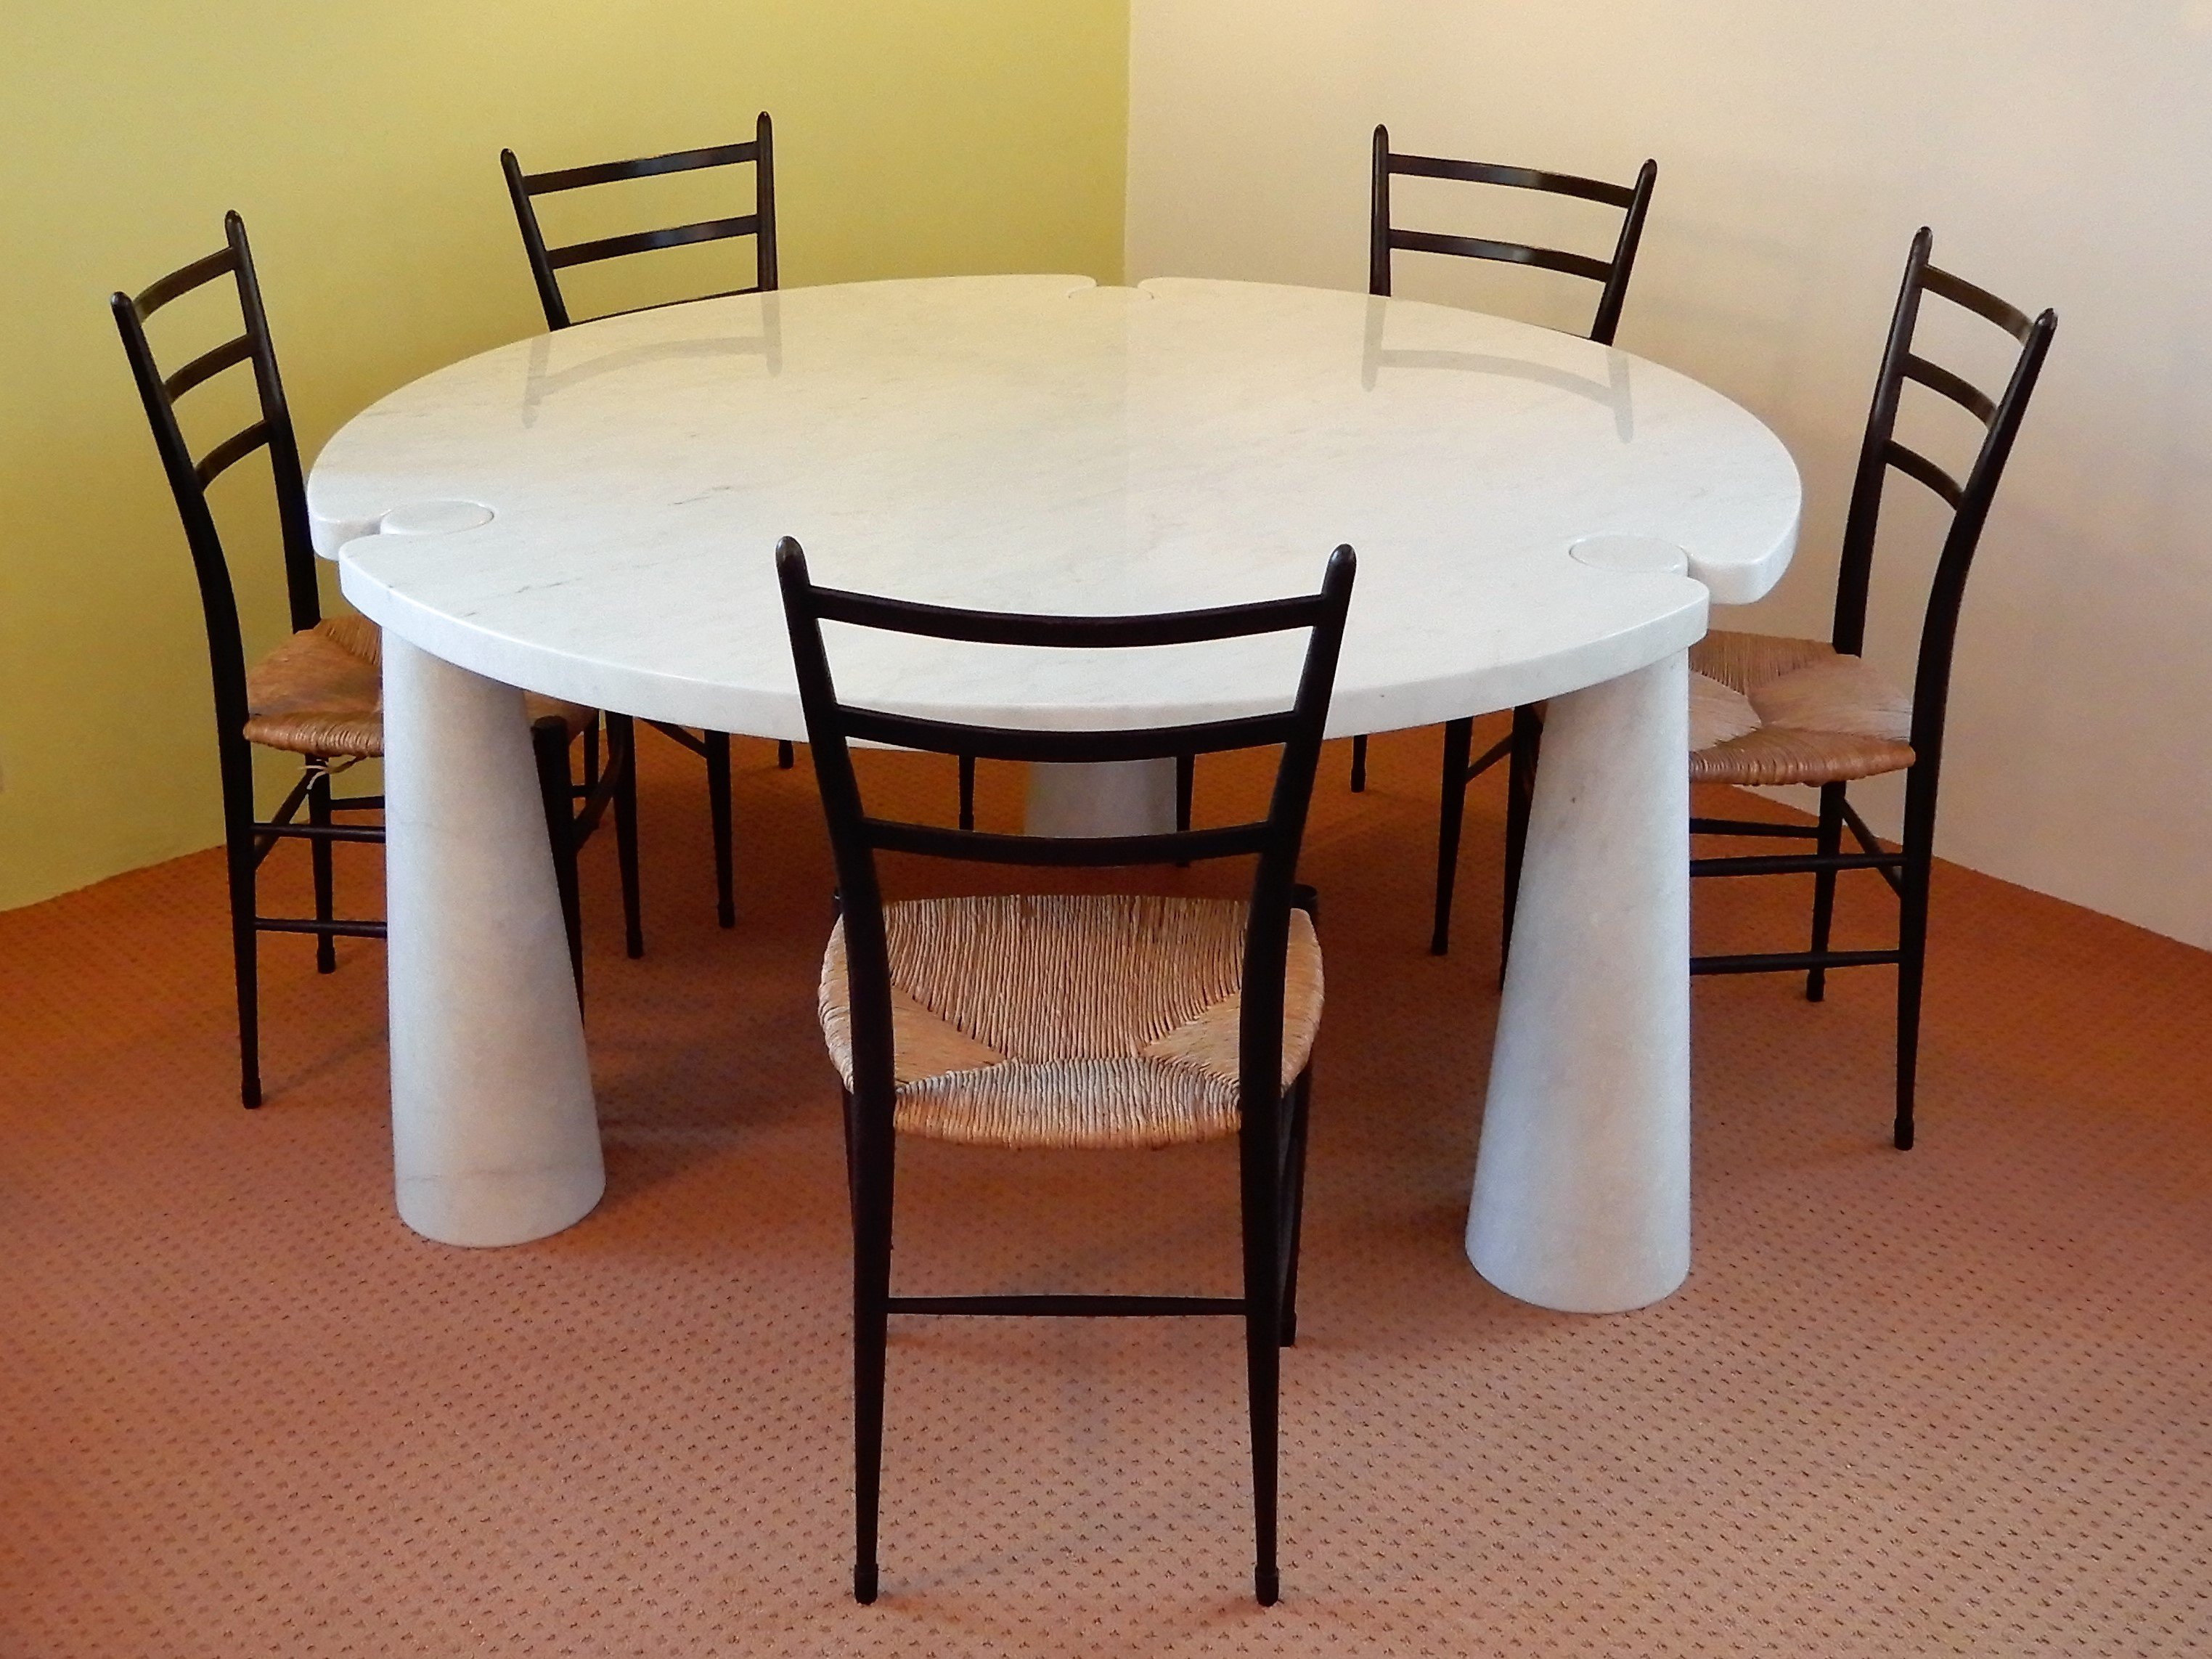 Swell Round Carrera Marble Eros Dining Table By Angelo Mangiarotti Cjindustries Chair Design For Home Cjindustriesco